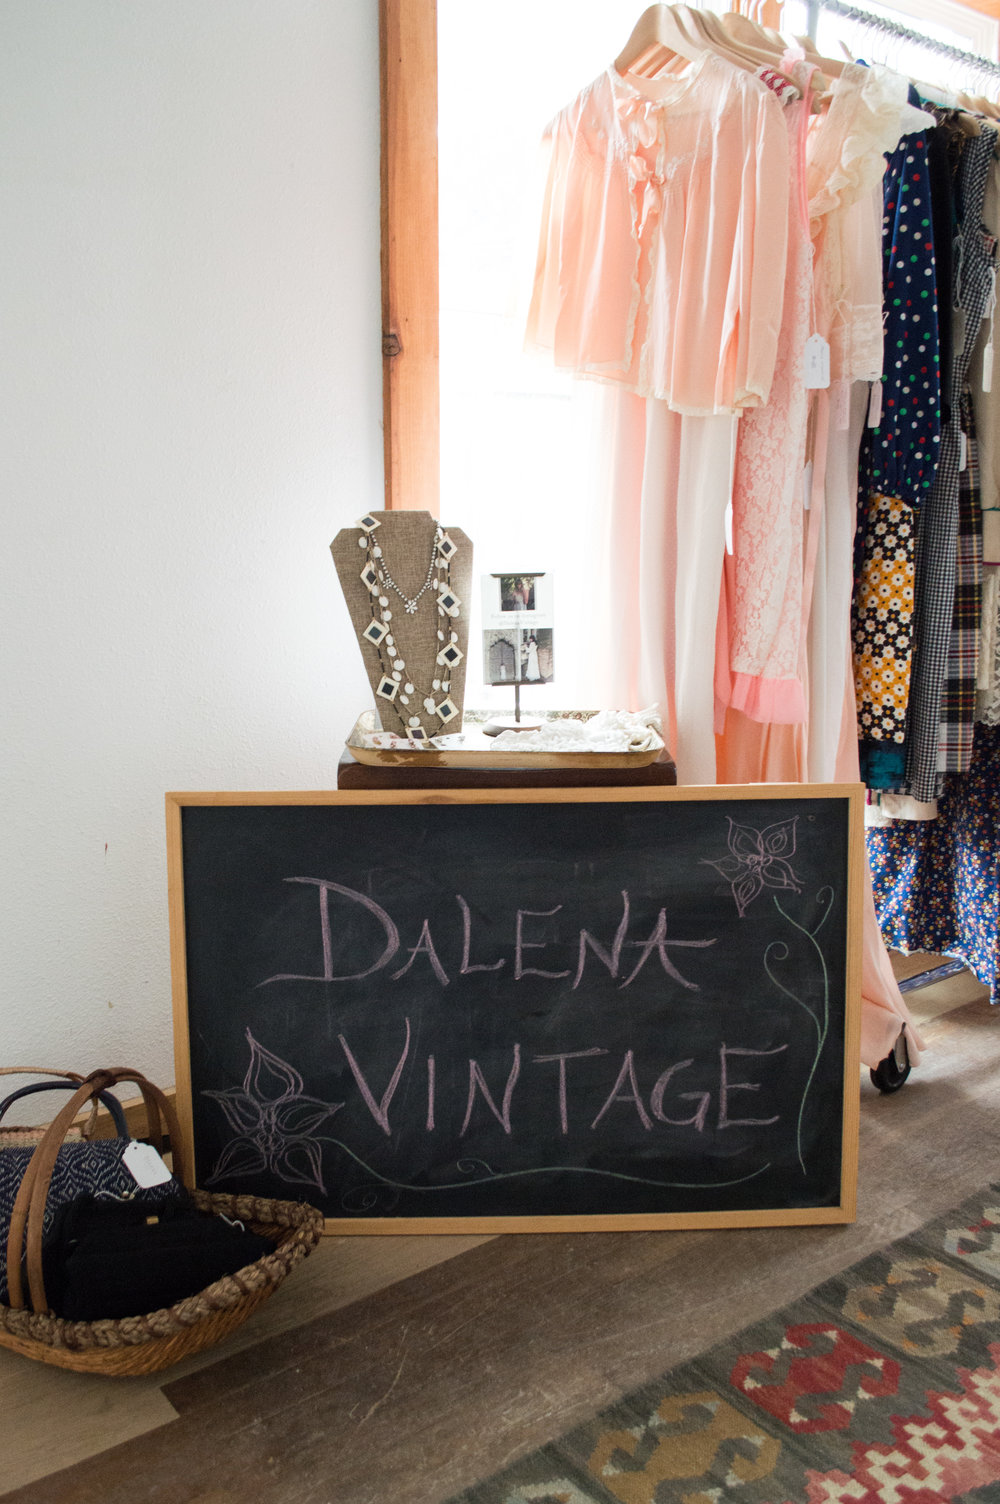 Galentine's Day Vintage Party pop-up up display from Austin vintage clothing shop, Dalena Vintage.